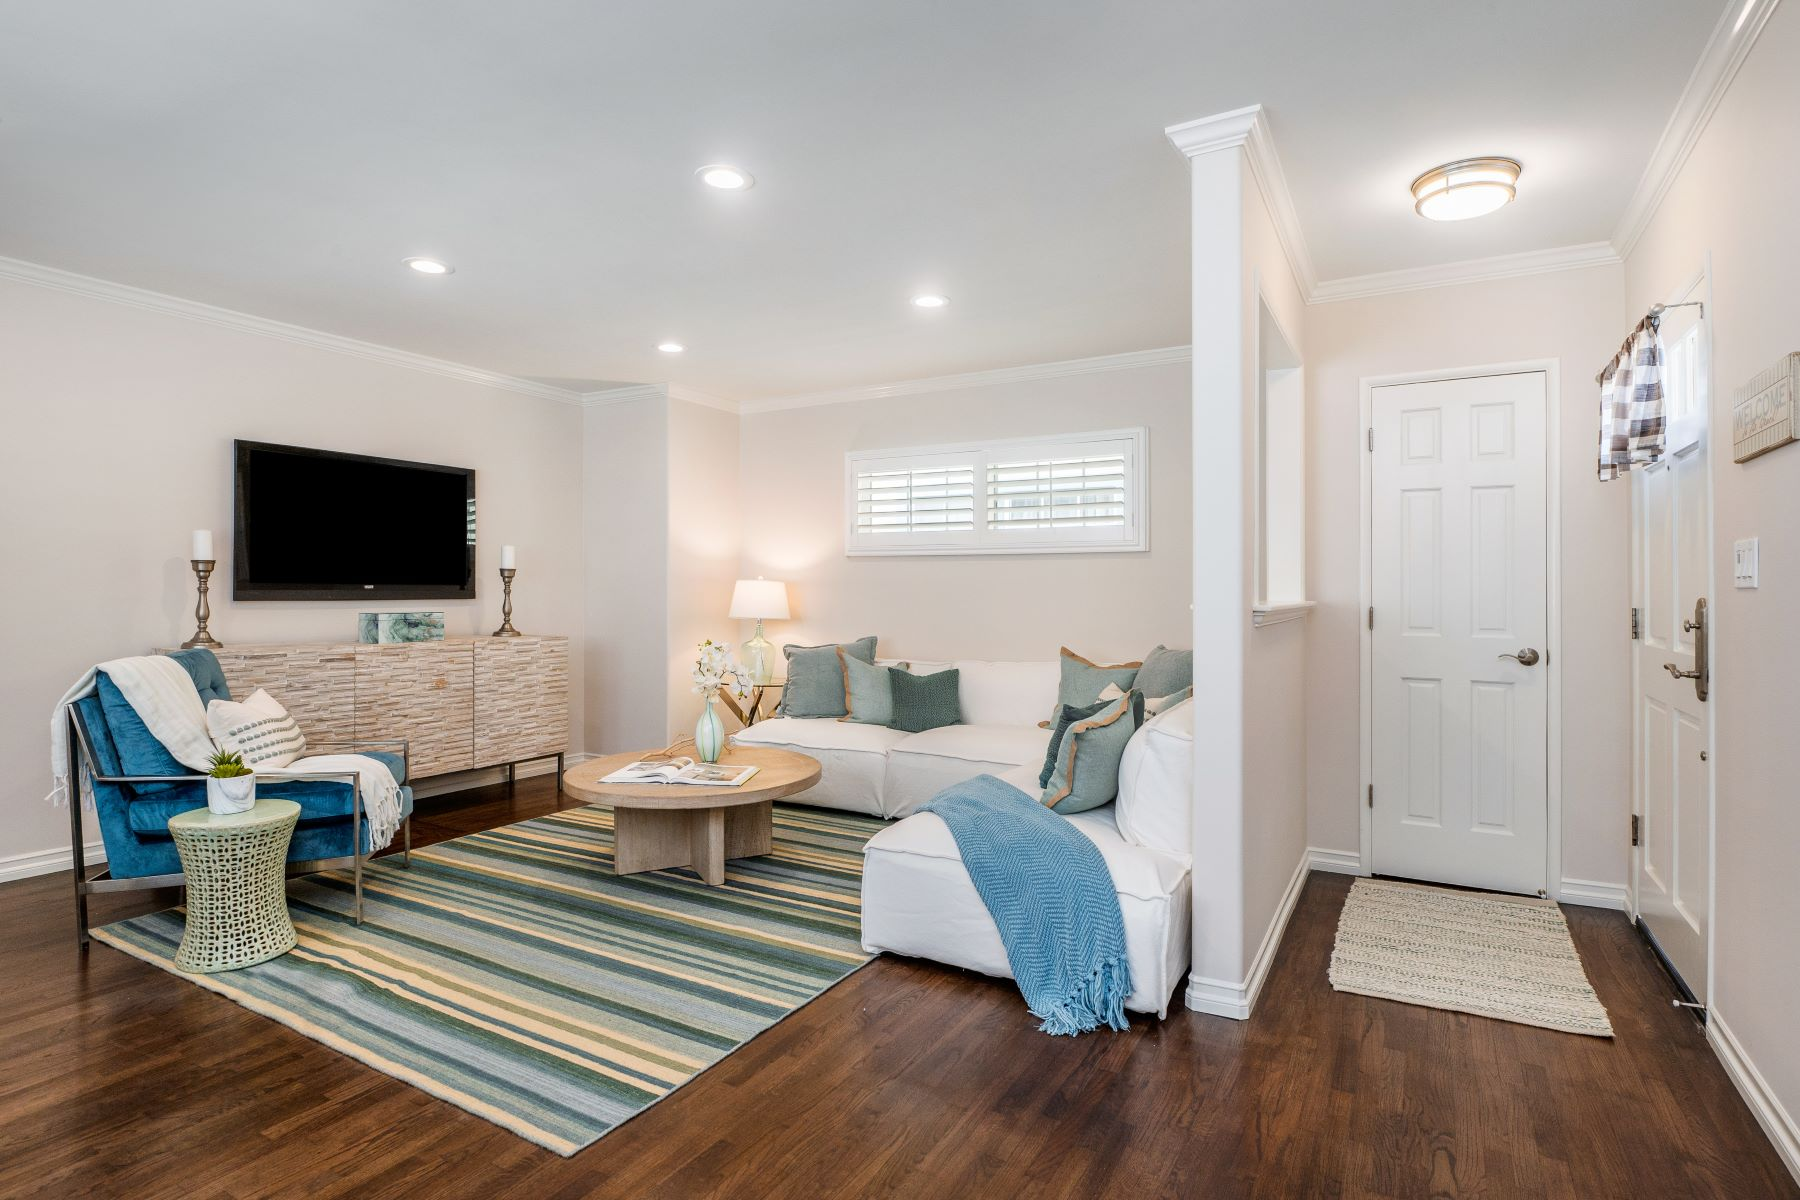 Single Family Homes for Active at 1140 Harper Avenue, Redondo Beach, CA 90278 1140 Harper Avenue Redondo Beach, California 90278 United States